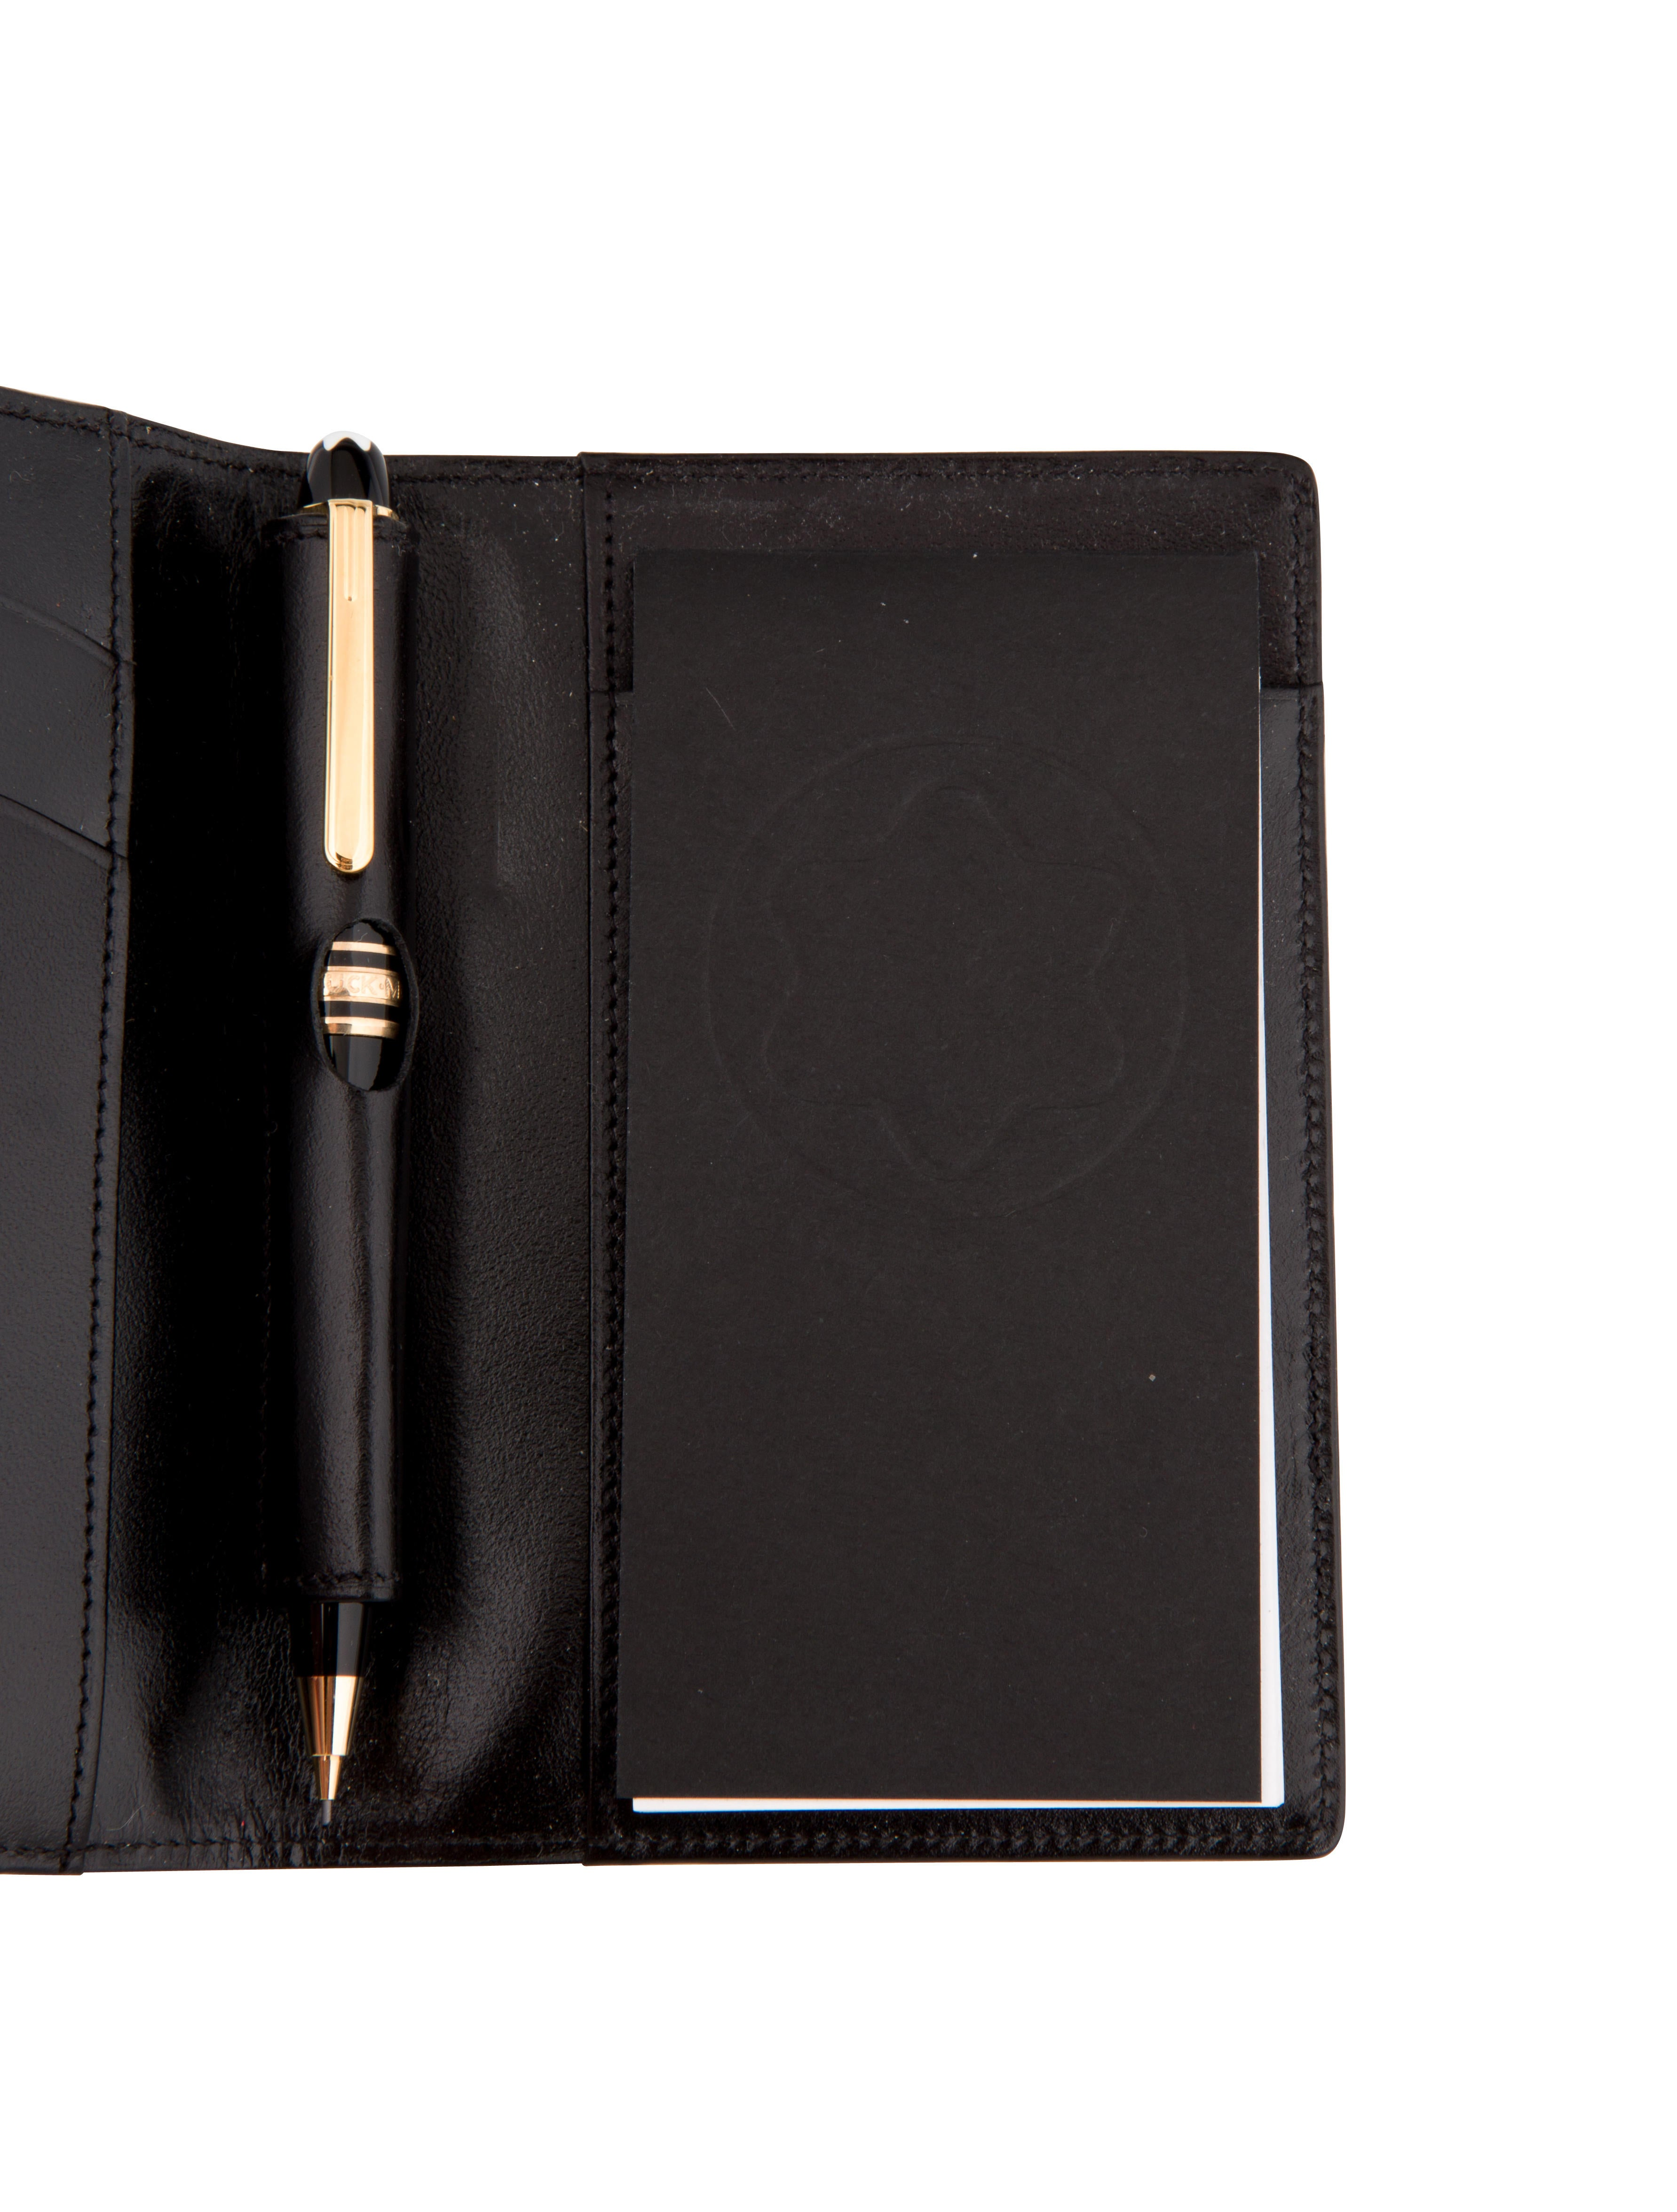 Mont Blanc Bifold Leather Notebook Decor And Accessories  : MOB203174enlarged from www.therealreal.com size 3566 x 4704 jpeg 866kB